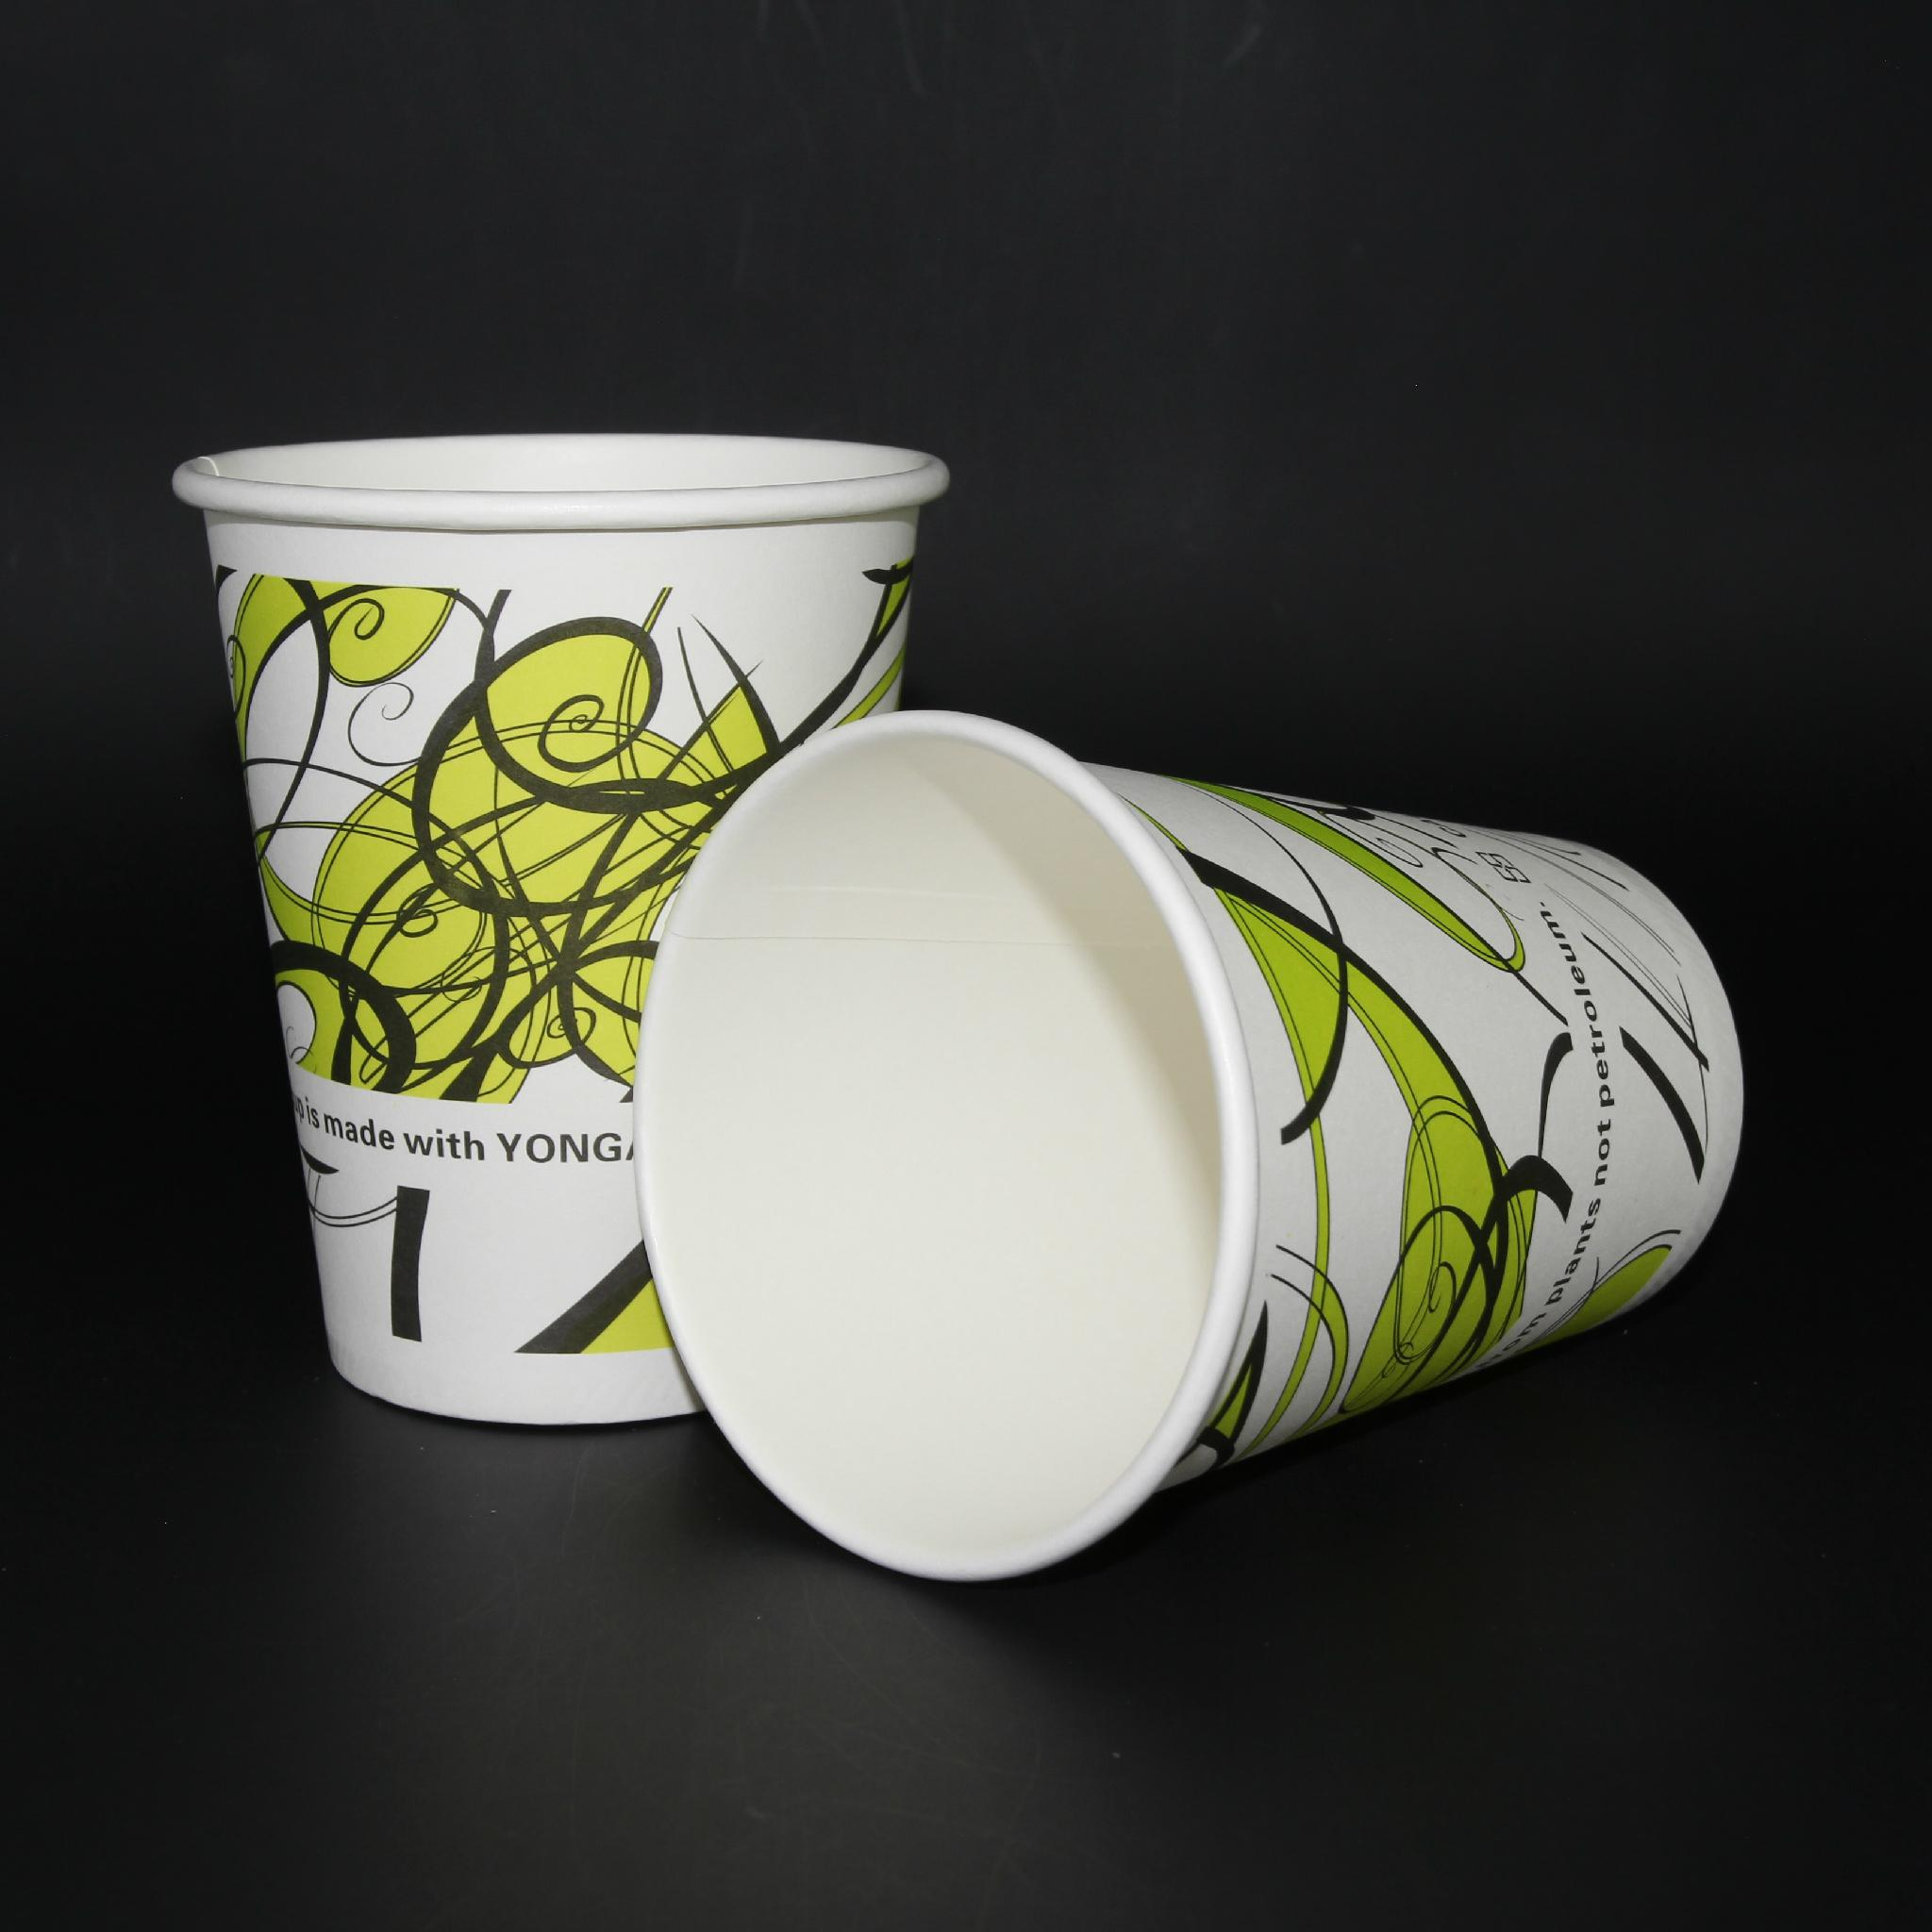 disposable wedding cup in US 3